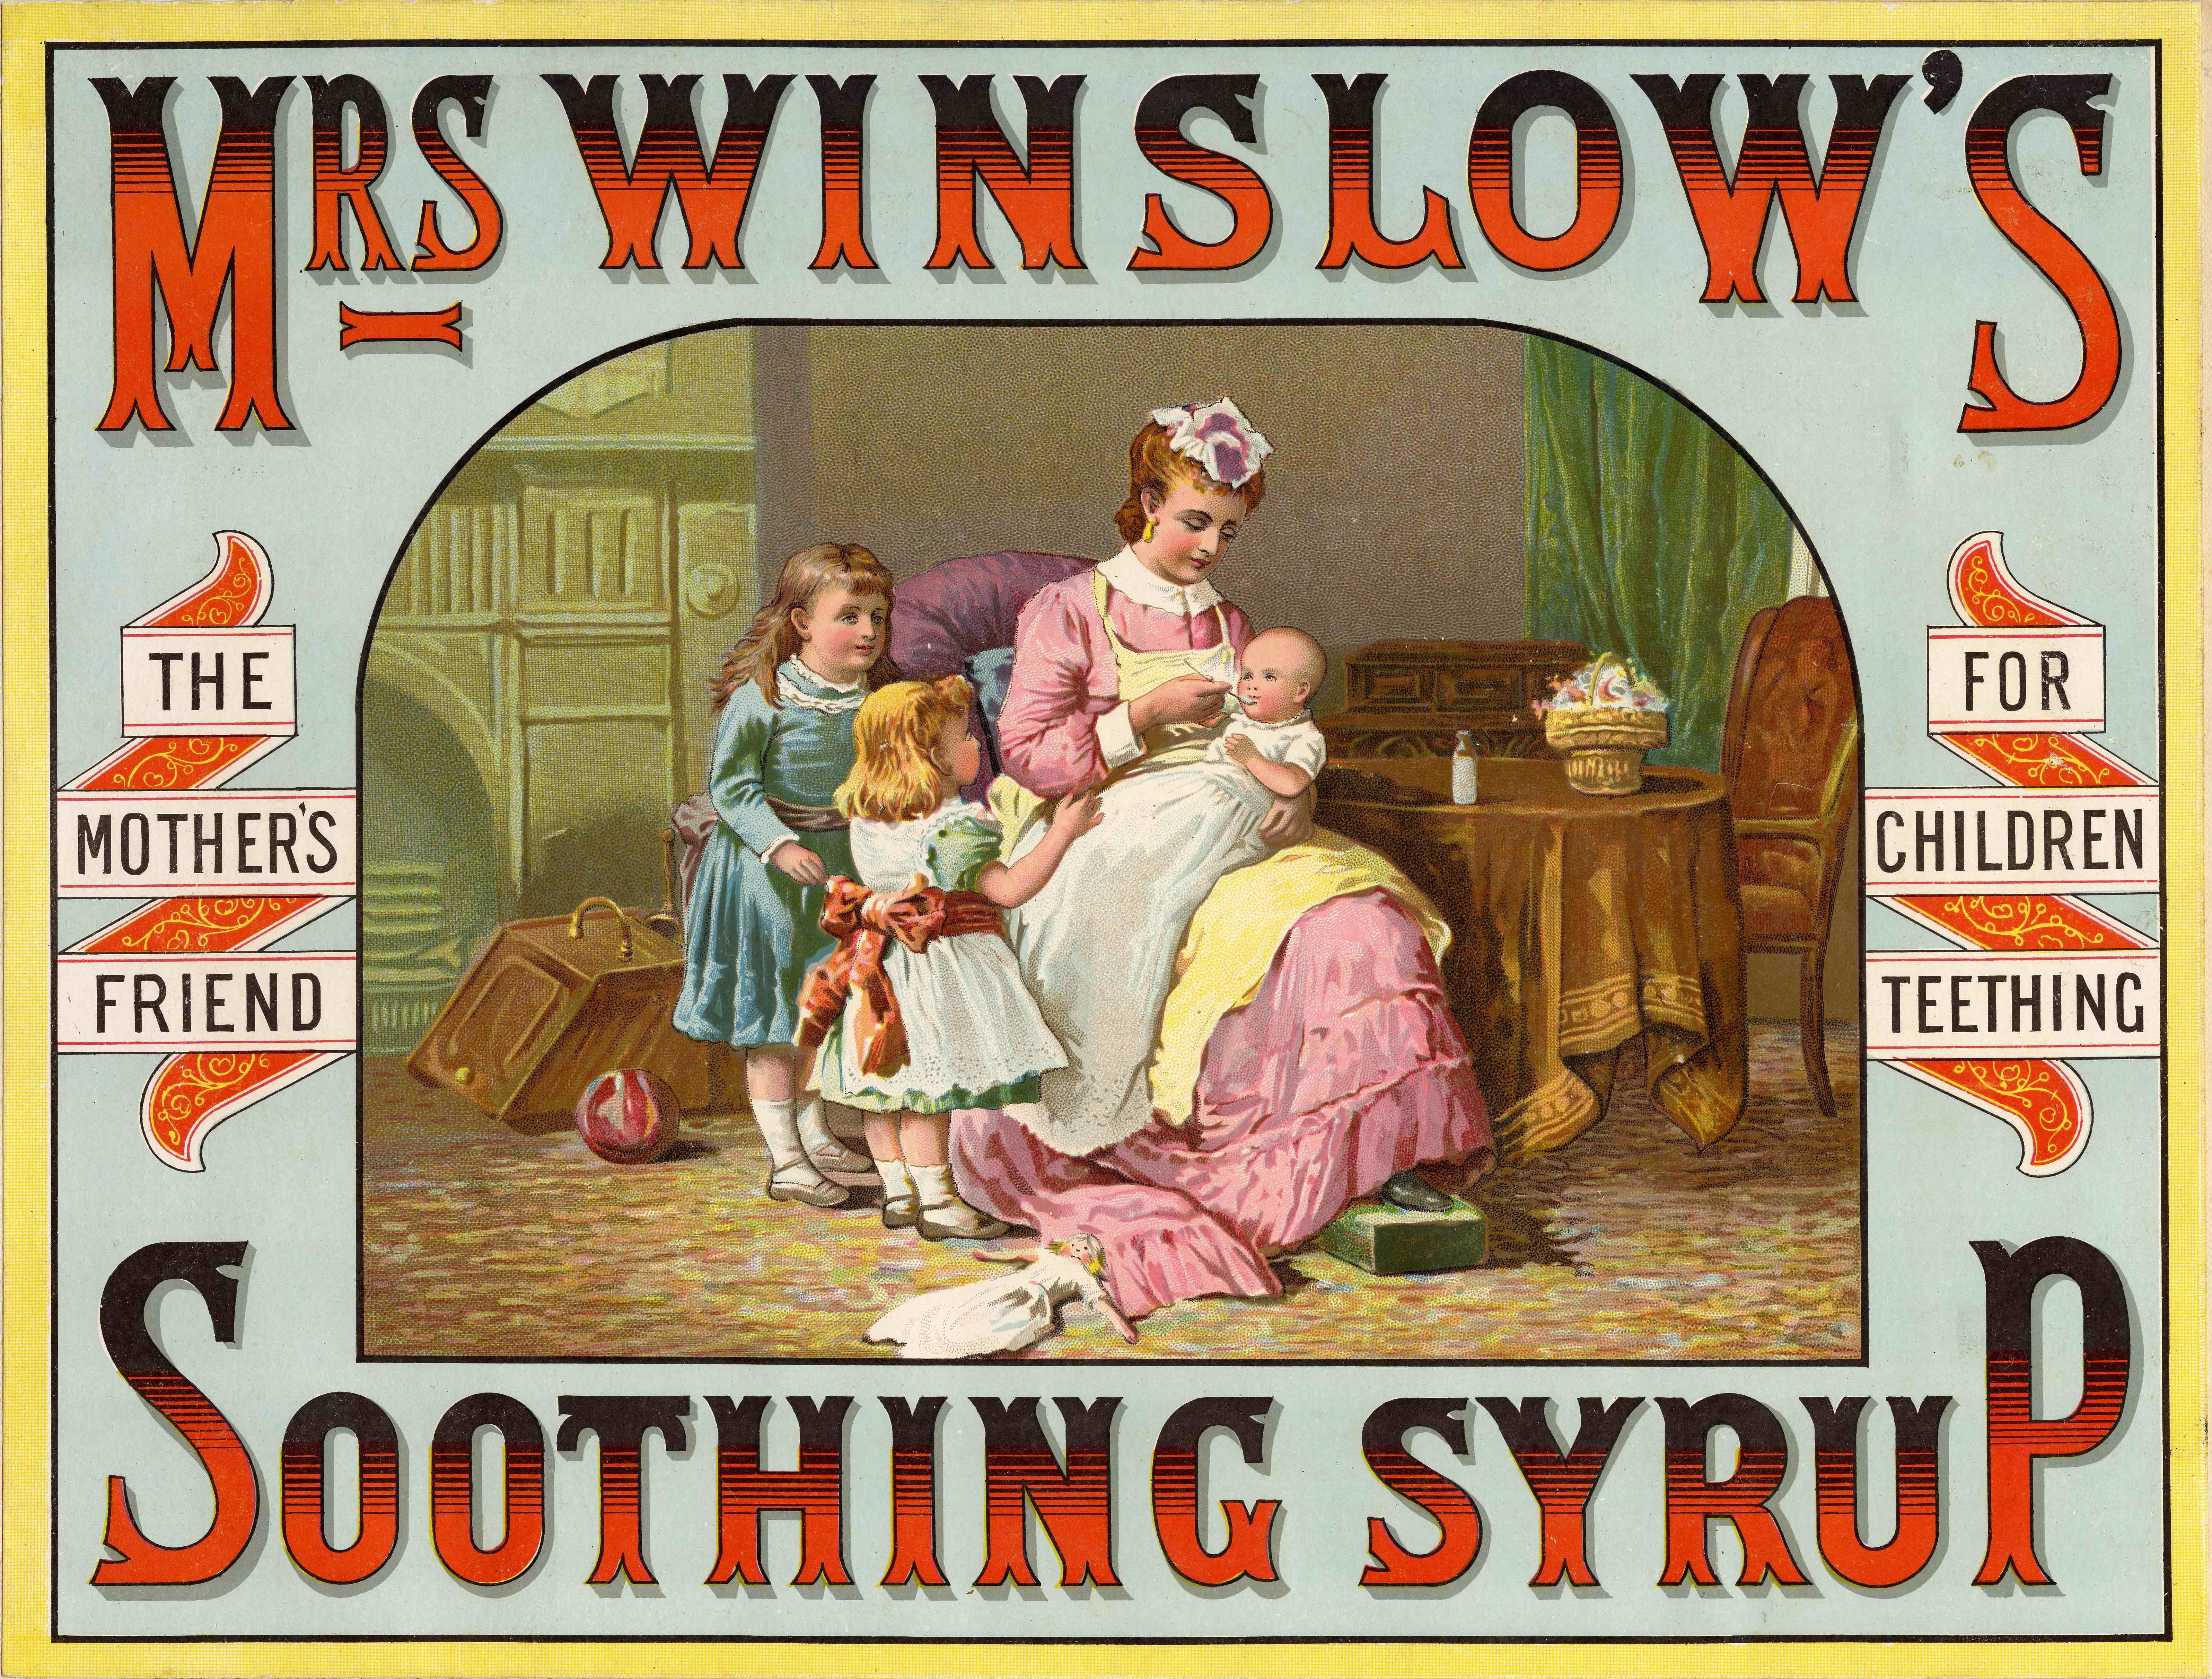 """This ad, circa 1880-1900, describes a """"<a href=""""http://www.nytimes.com/1860/12/01/news/mrs-winslow-s-soothing-syrup-for-child"""